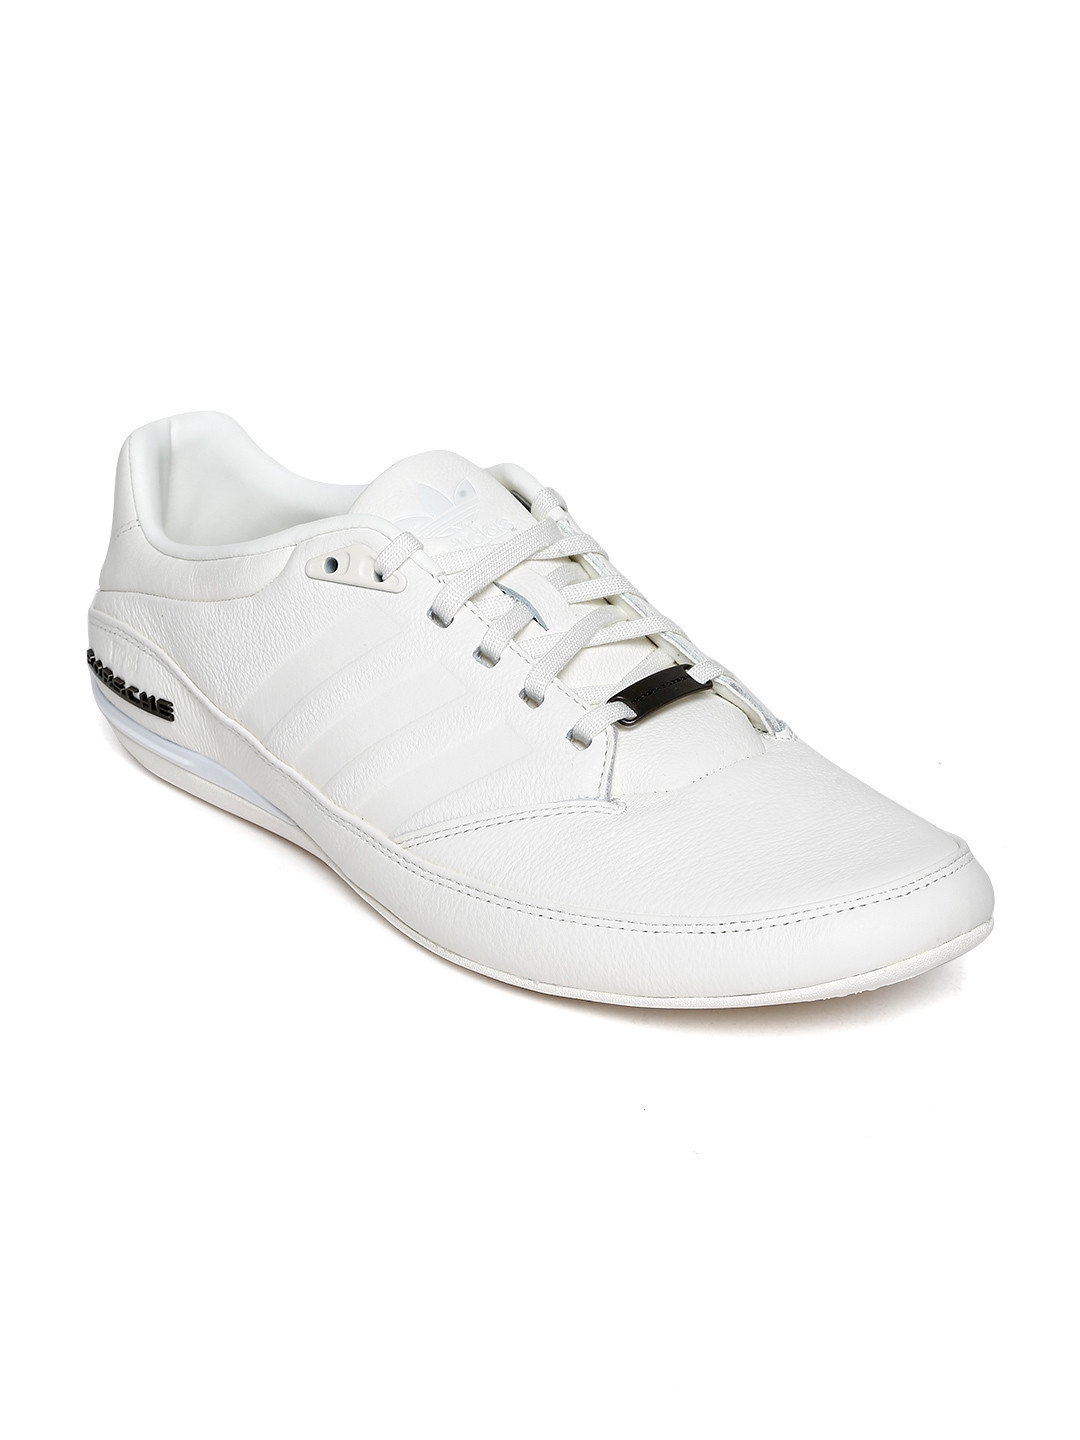 official photos 743d1 83dce ADIDAS Originals Men White Porsche TYP 64 2.0 Leather Casual Shoes